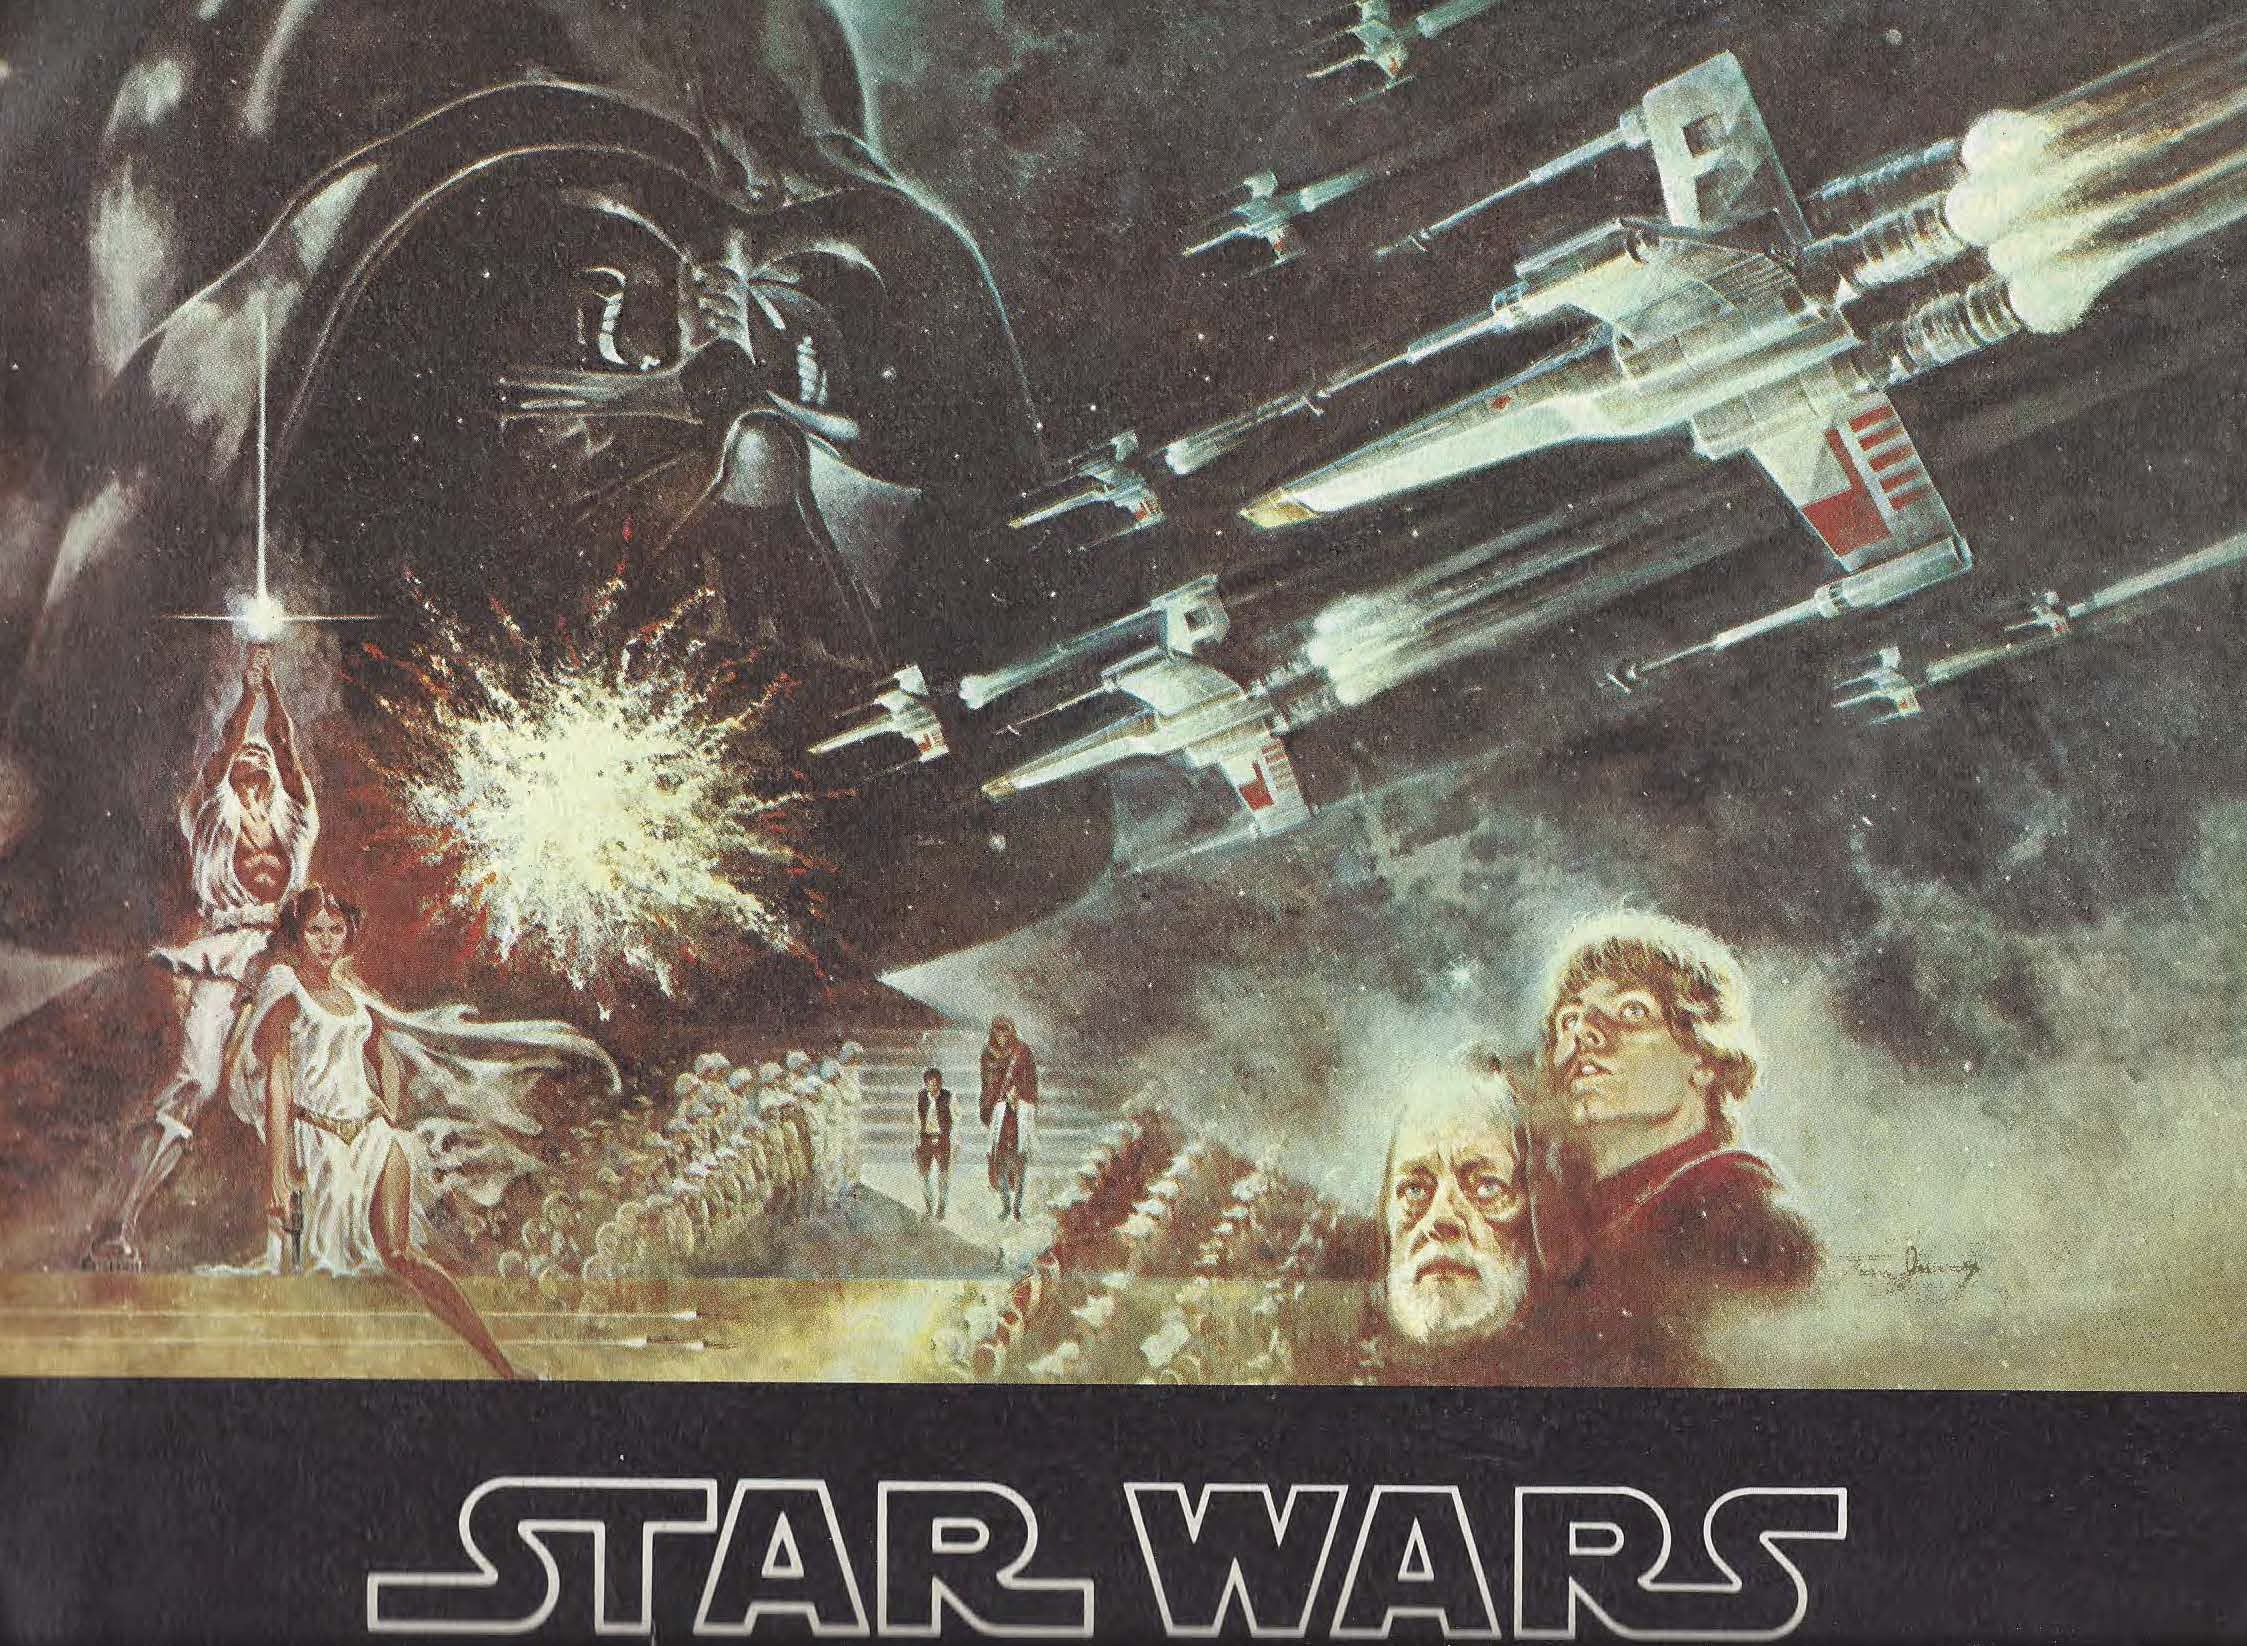 Making The Kessel Run With The Quot Star Wars Quot 1977 Souvenir